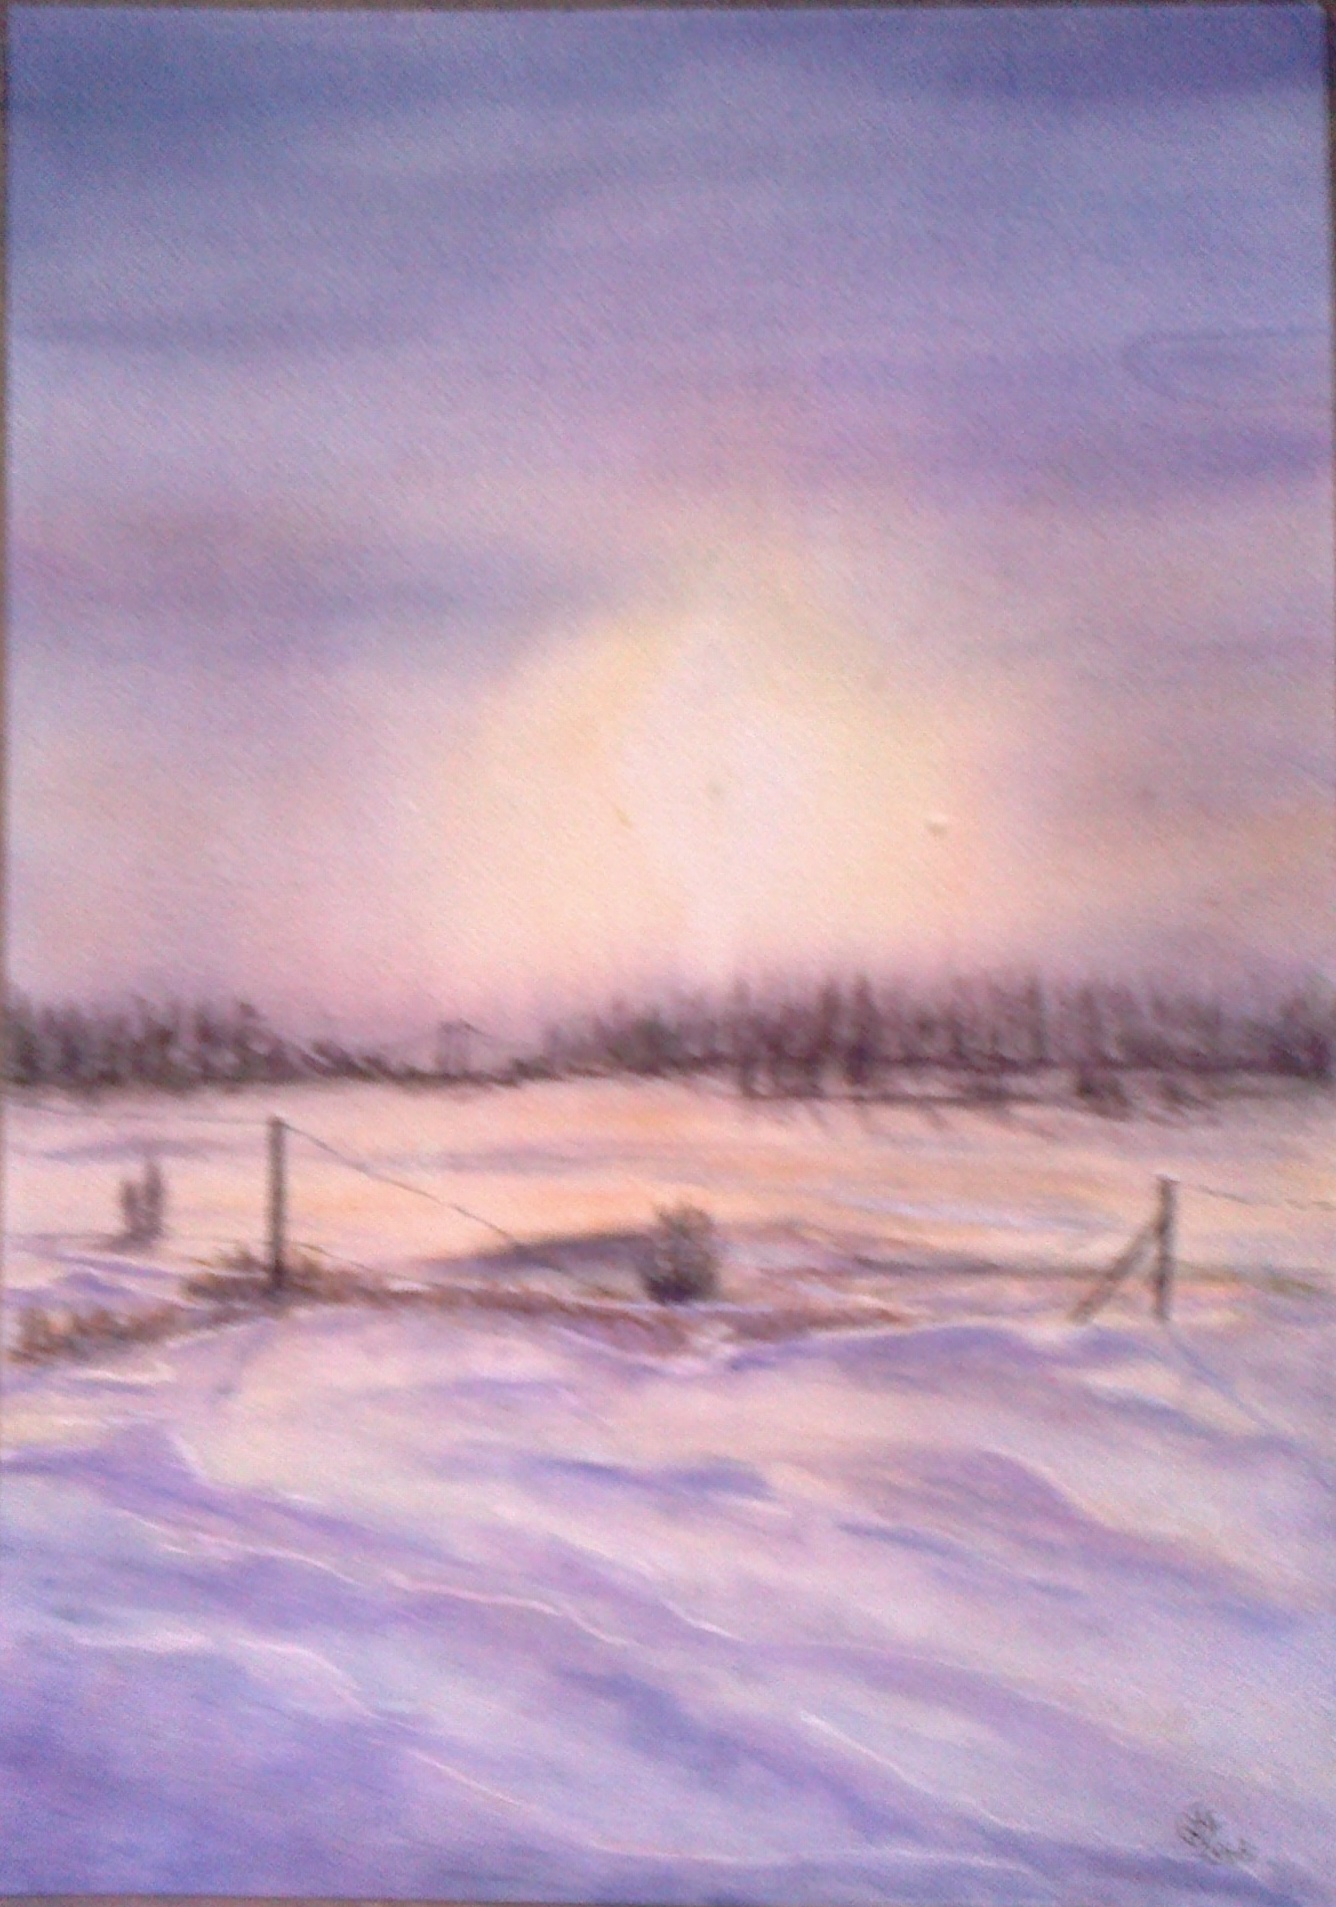 """WINTER SNOW, DARTFORD"". SOLD"